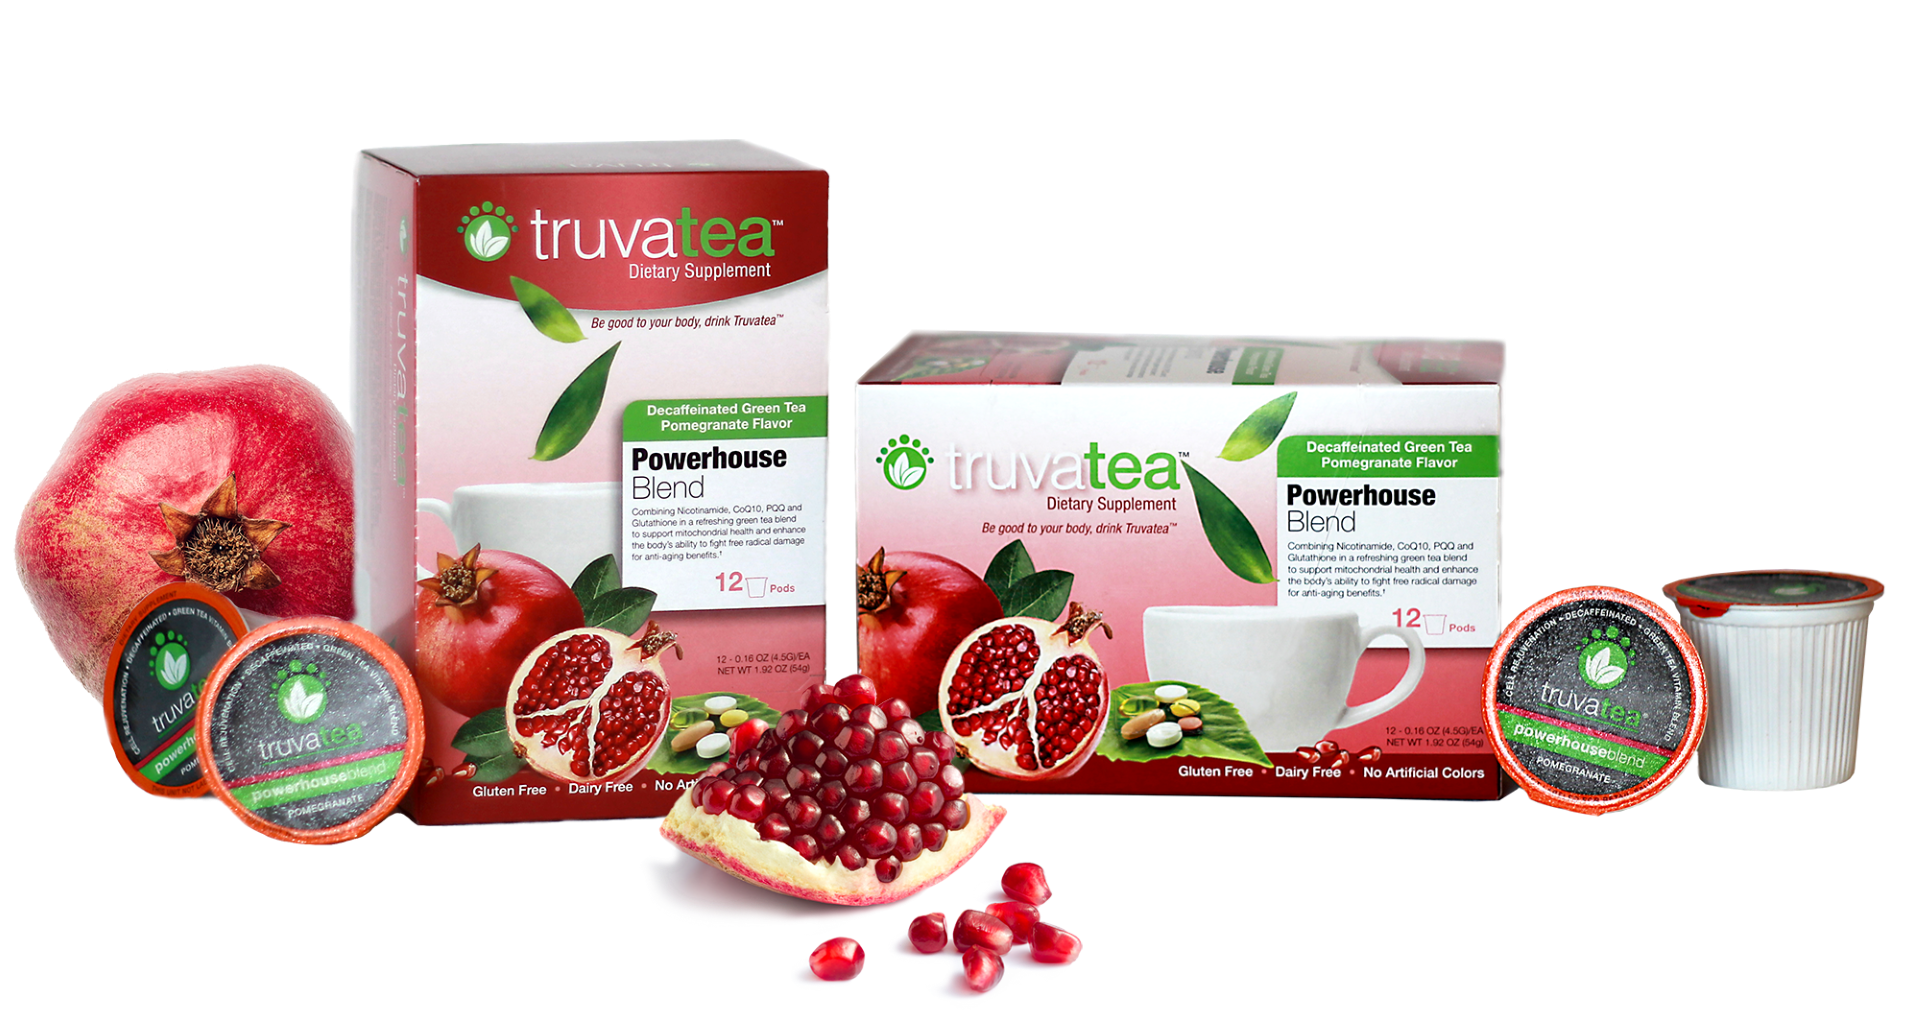 Truvatea packaging